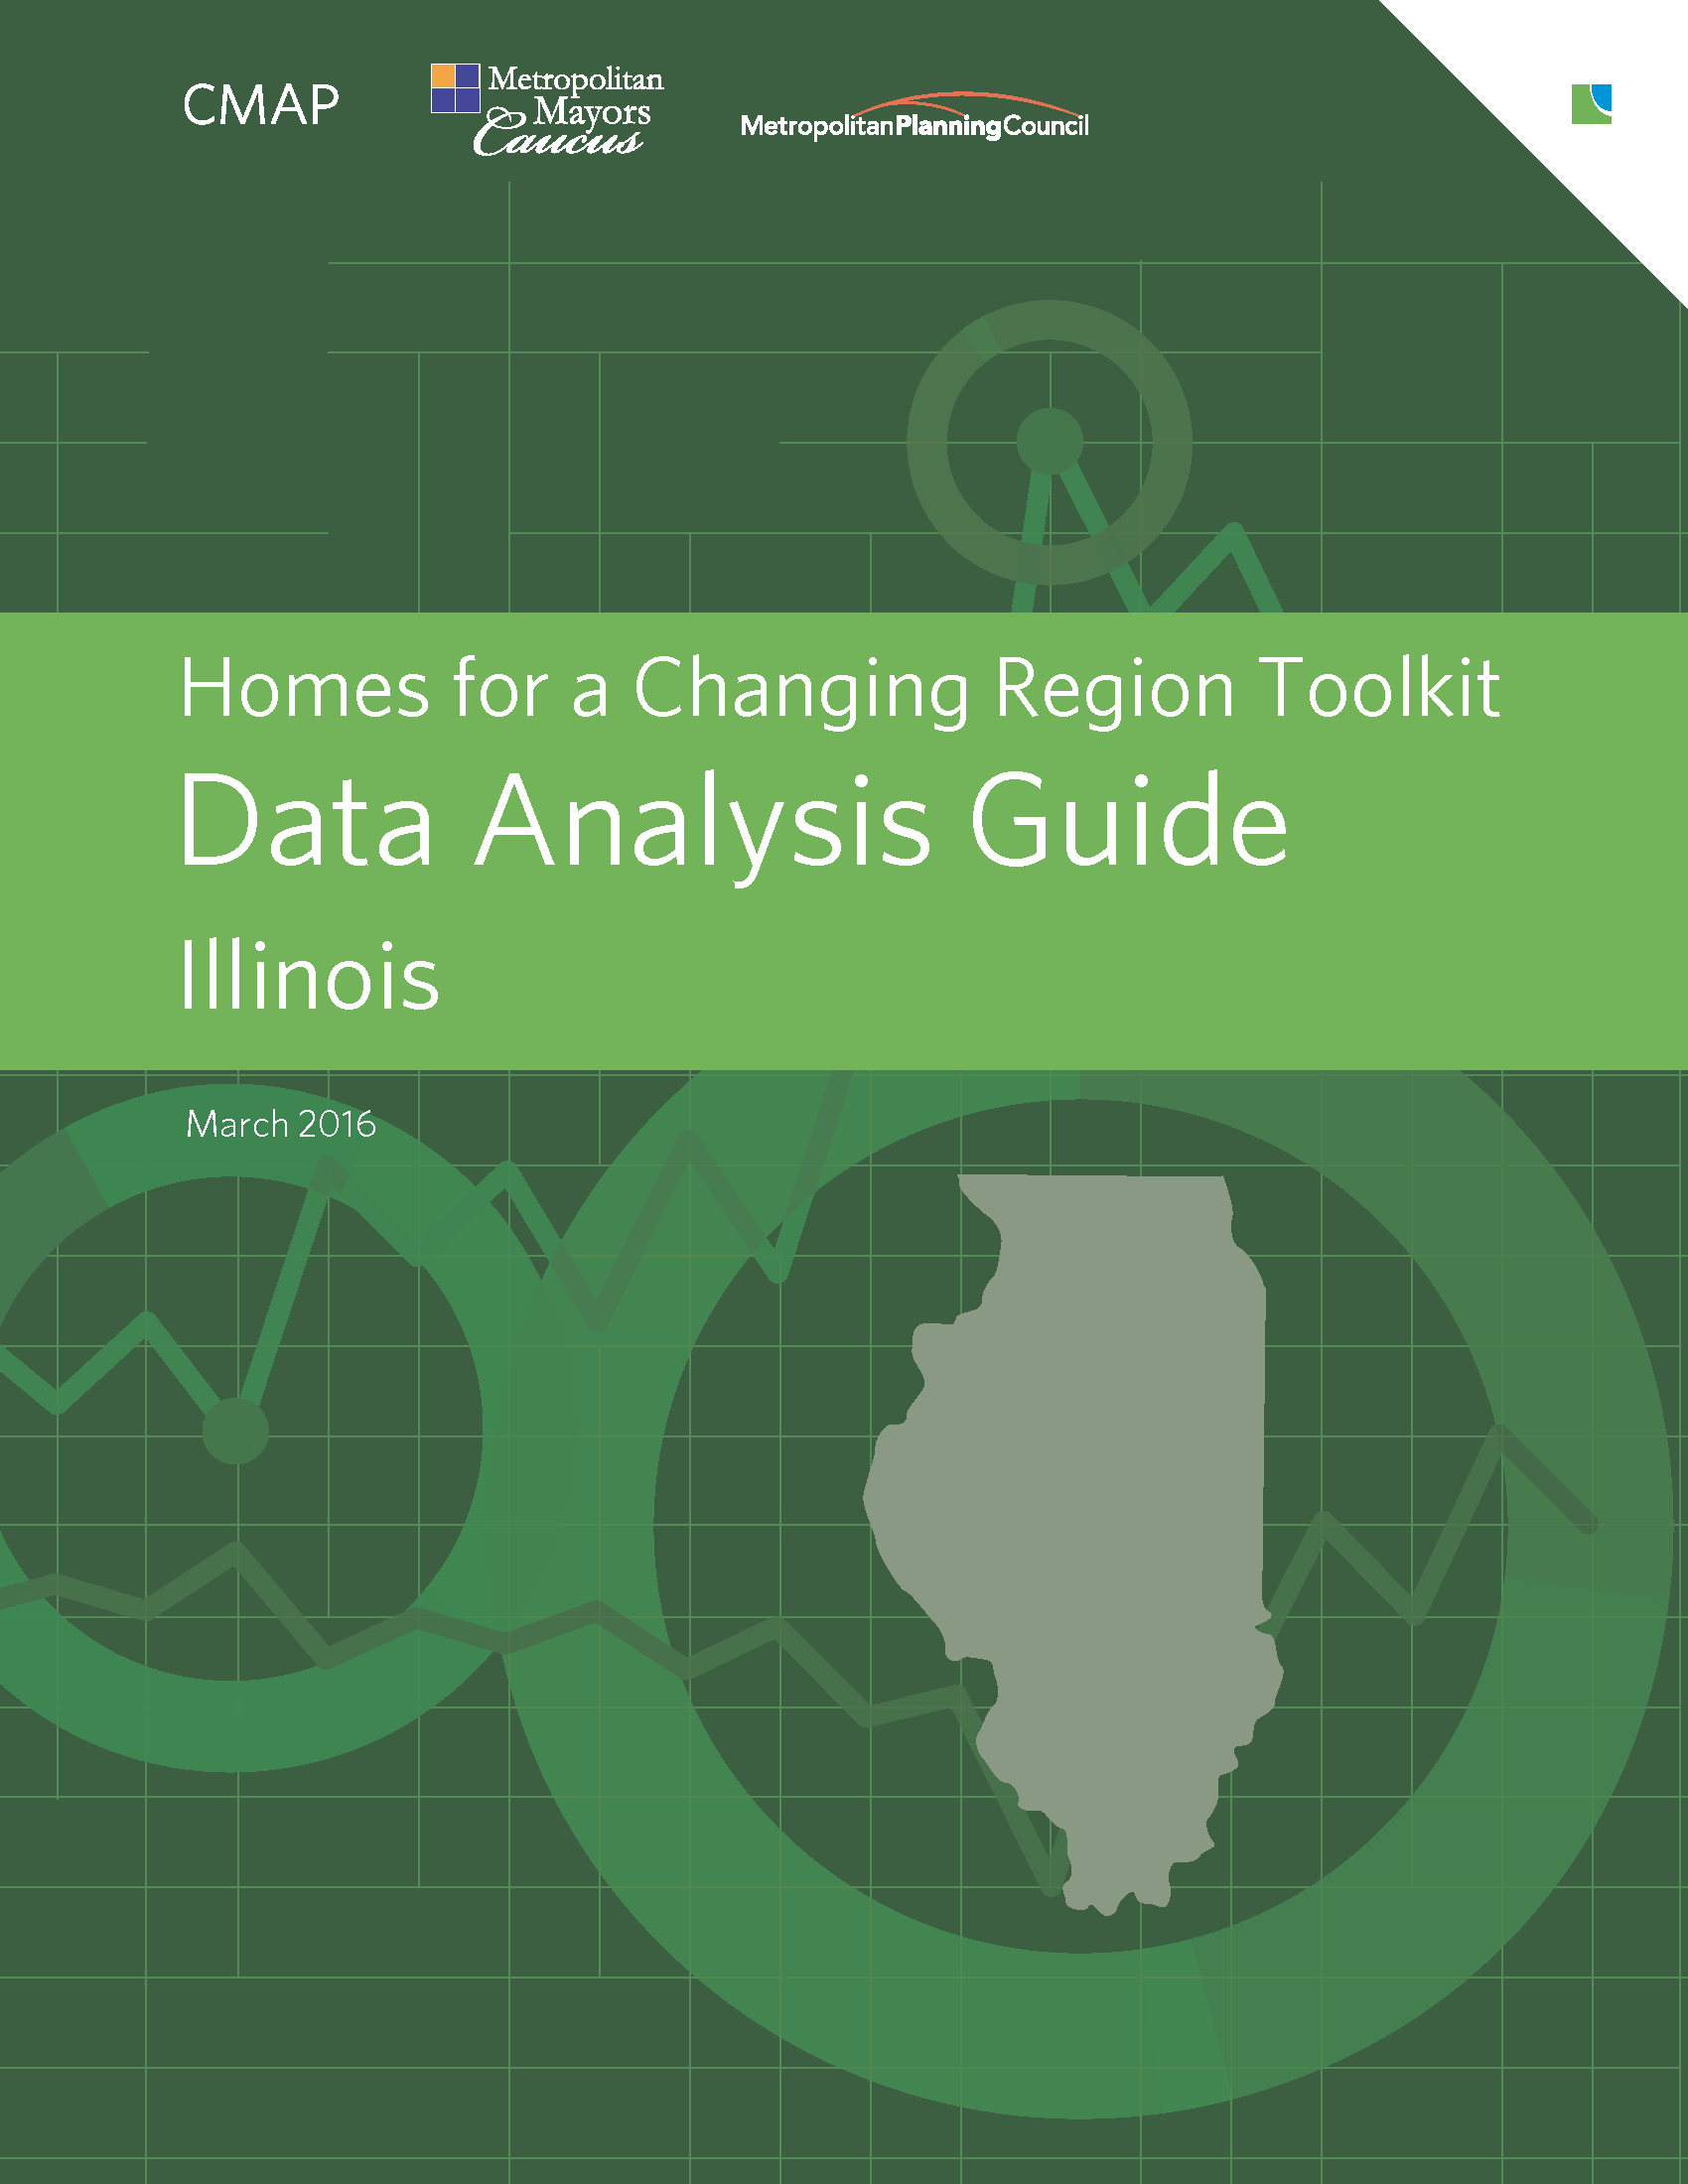 FY16-0061 2016 HOMES TOOLKIT DATA ANALYSIS GUIDE COVER - ILLINOIS_Page_1.png